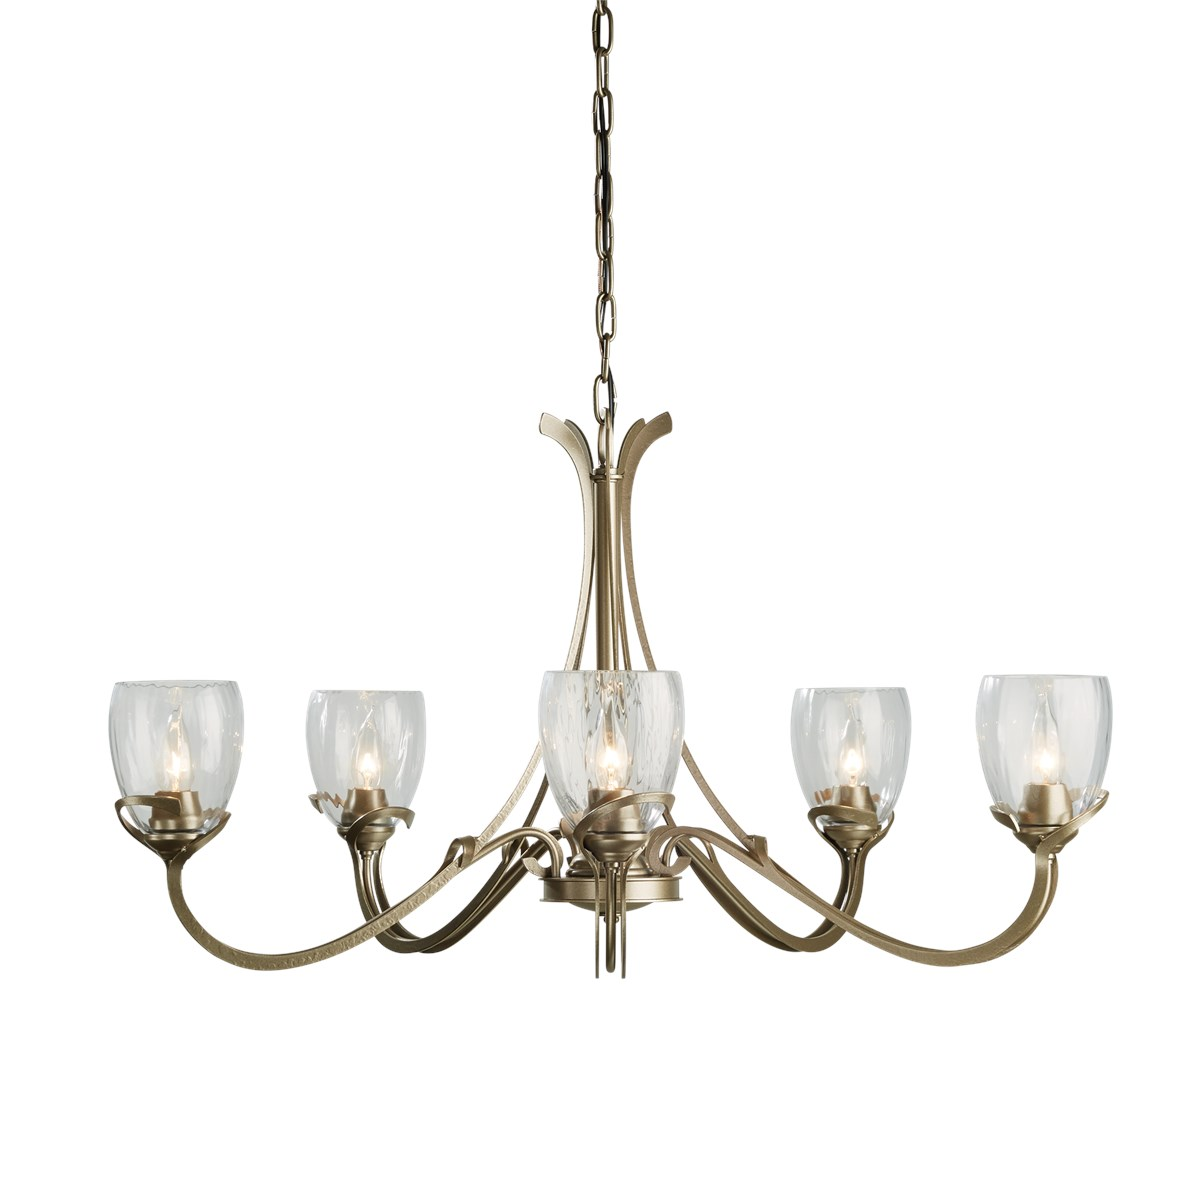 Hubbardton Forge Glass Shades: 5 Arm Chandelier With Glass Shades